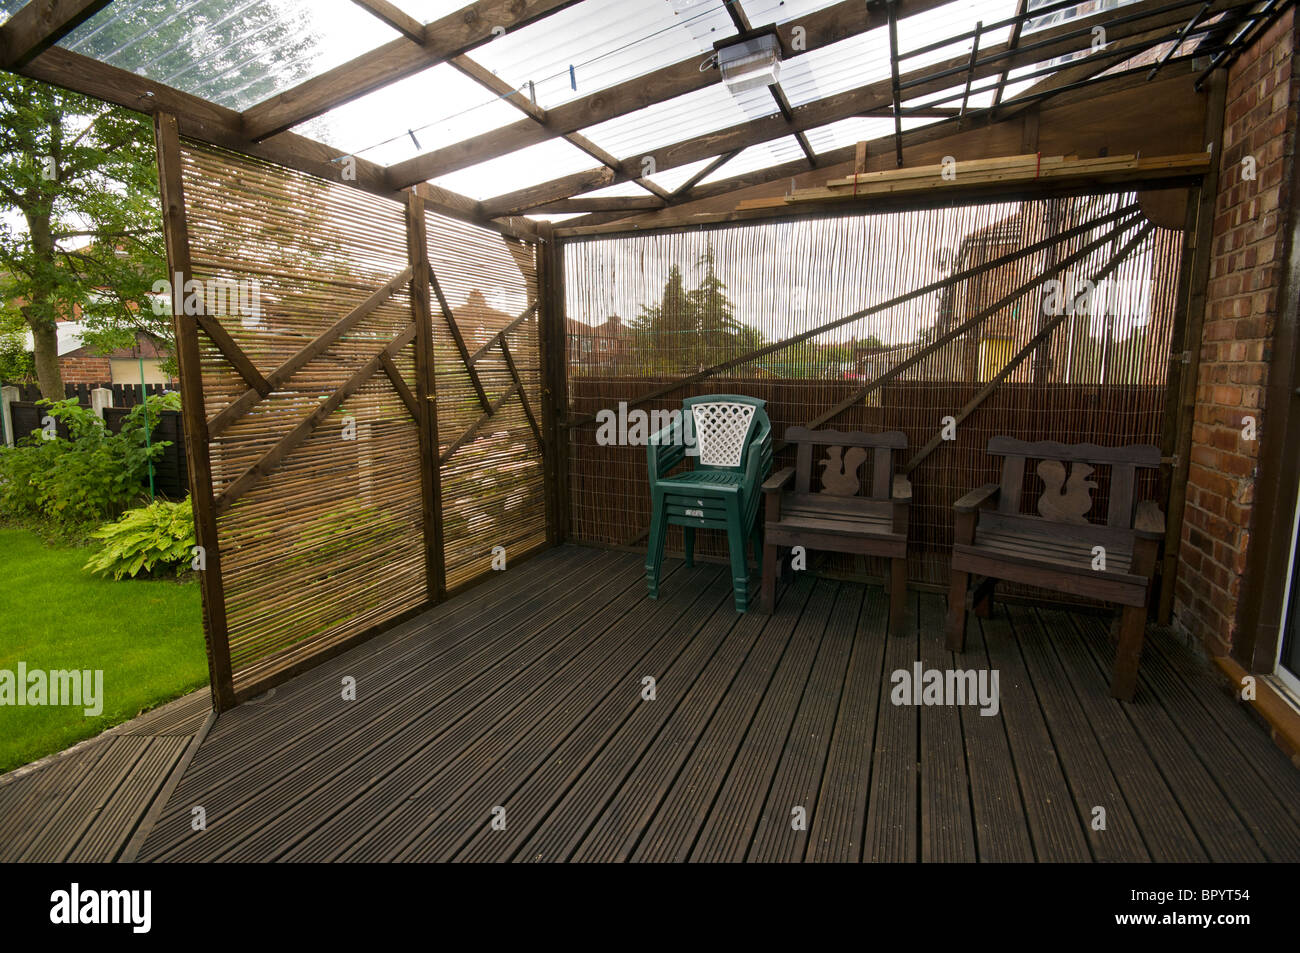 Home Built Patio Decking With Corrugated Plastic Roofing And Movable  Screening Panels In A Domestic Setting